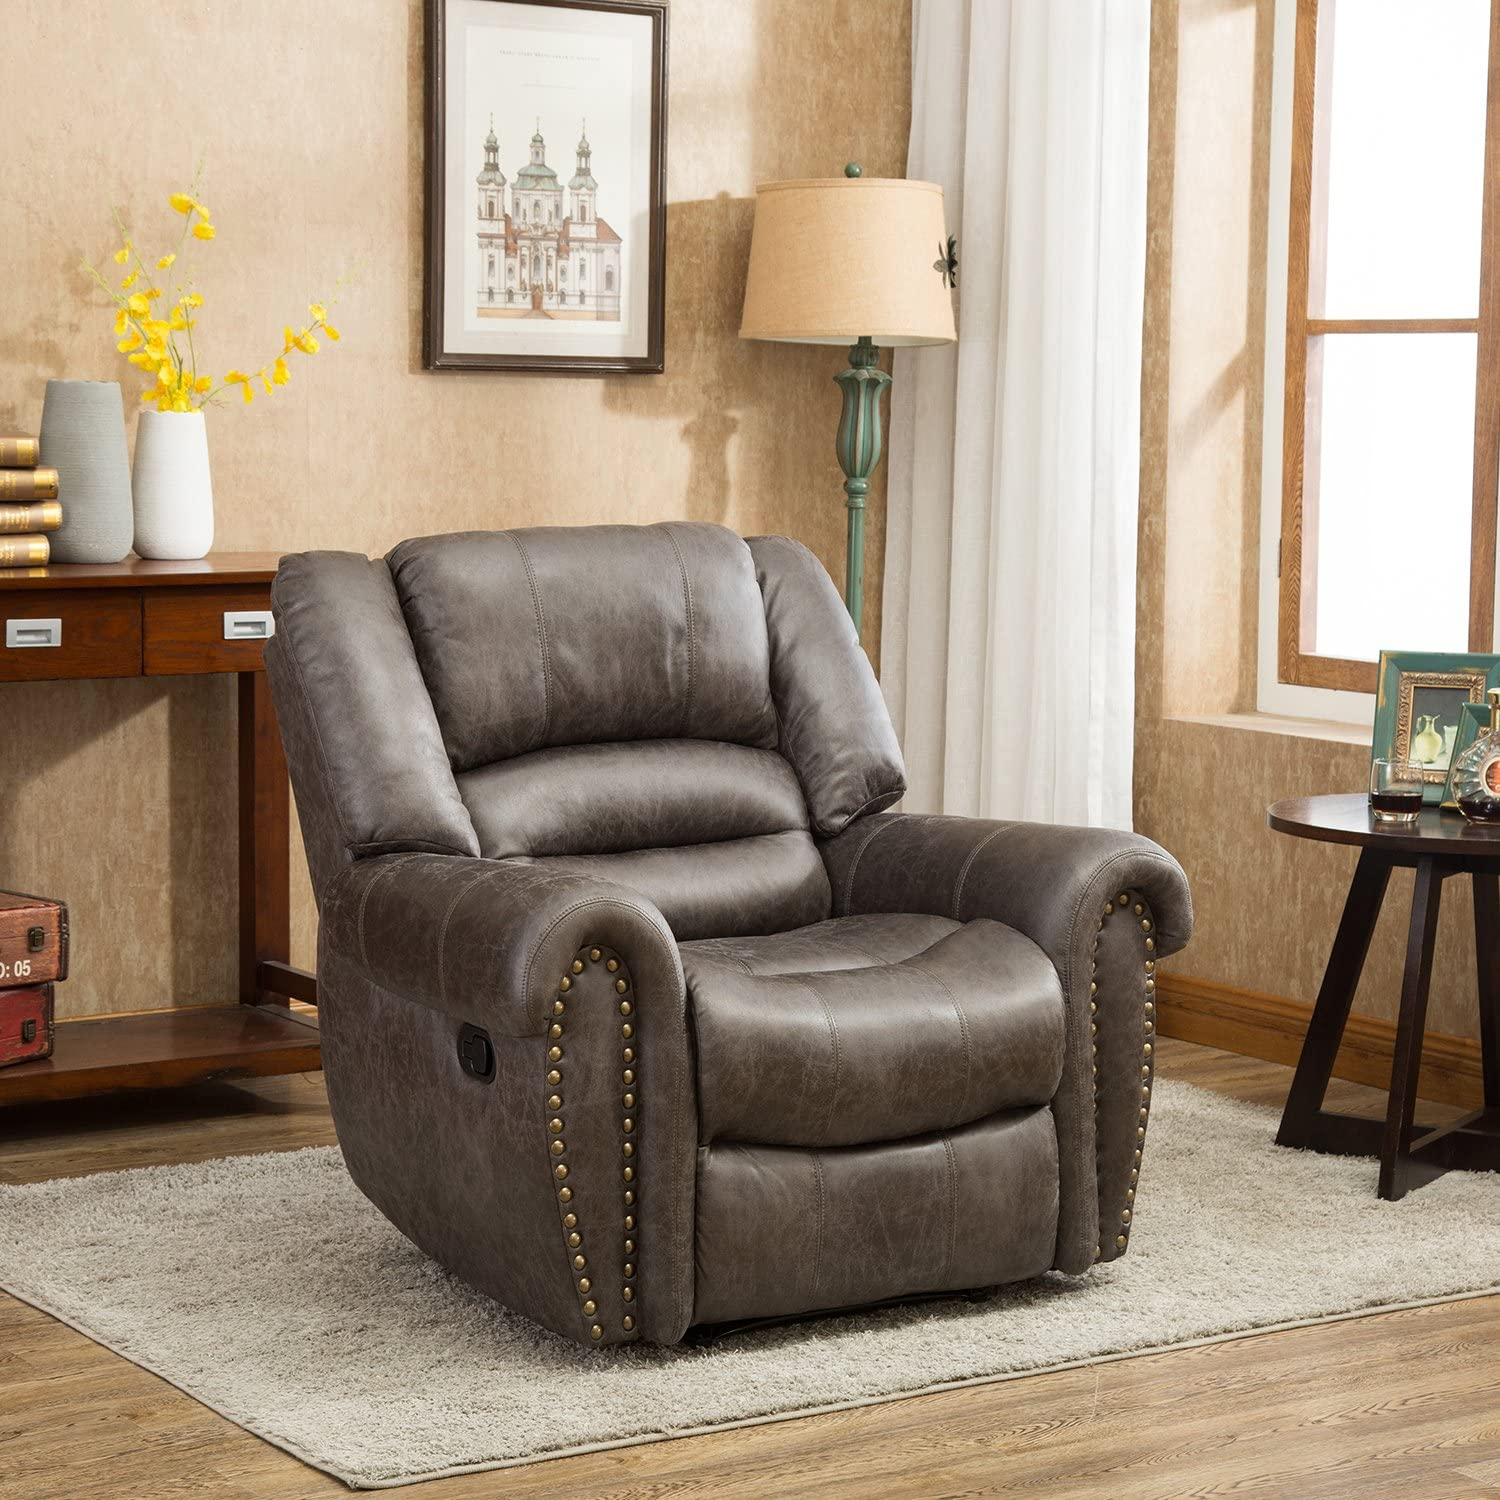 BONZY Oversized Recliner Leather Lounge Chair luxury